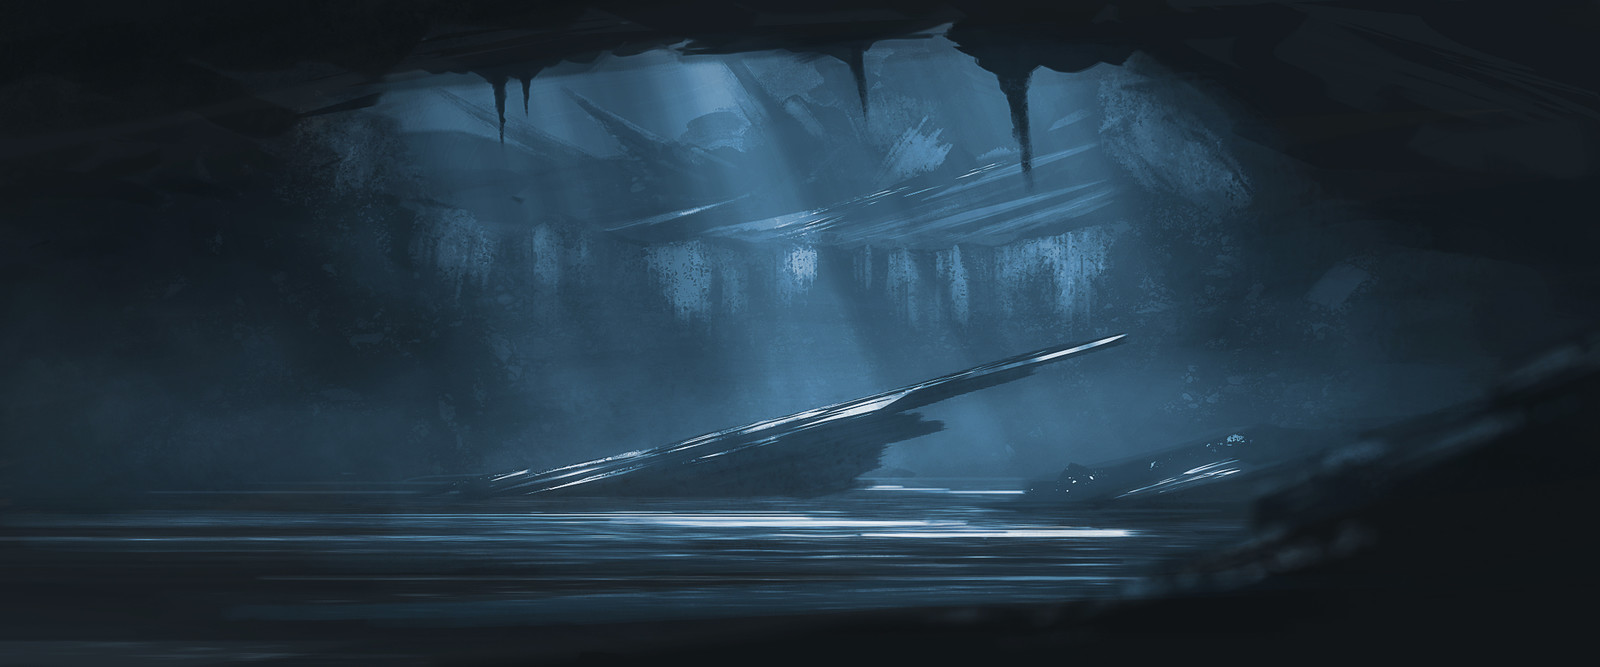 cave environment sketch